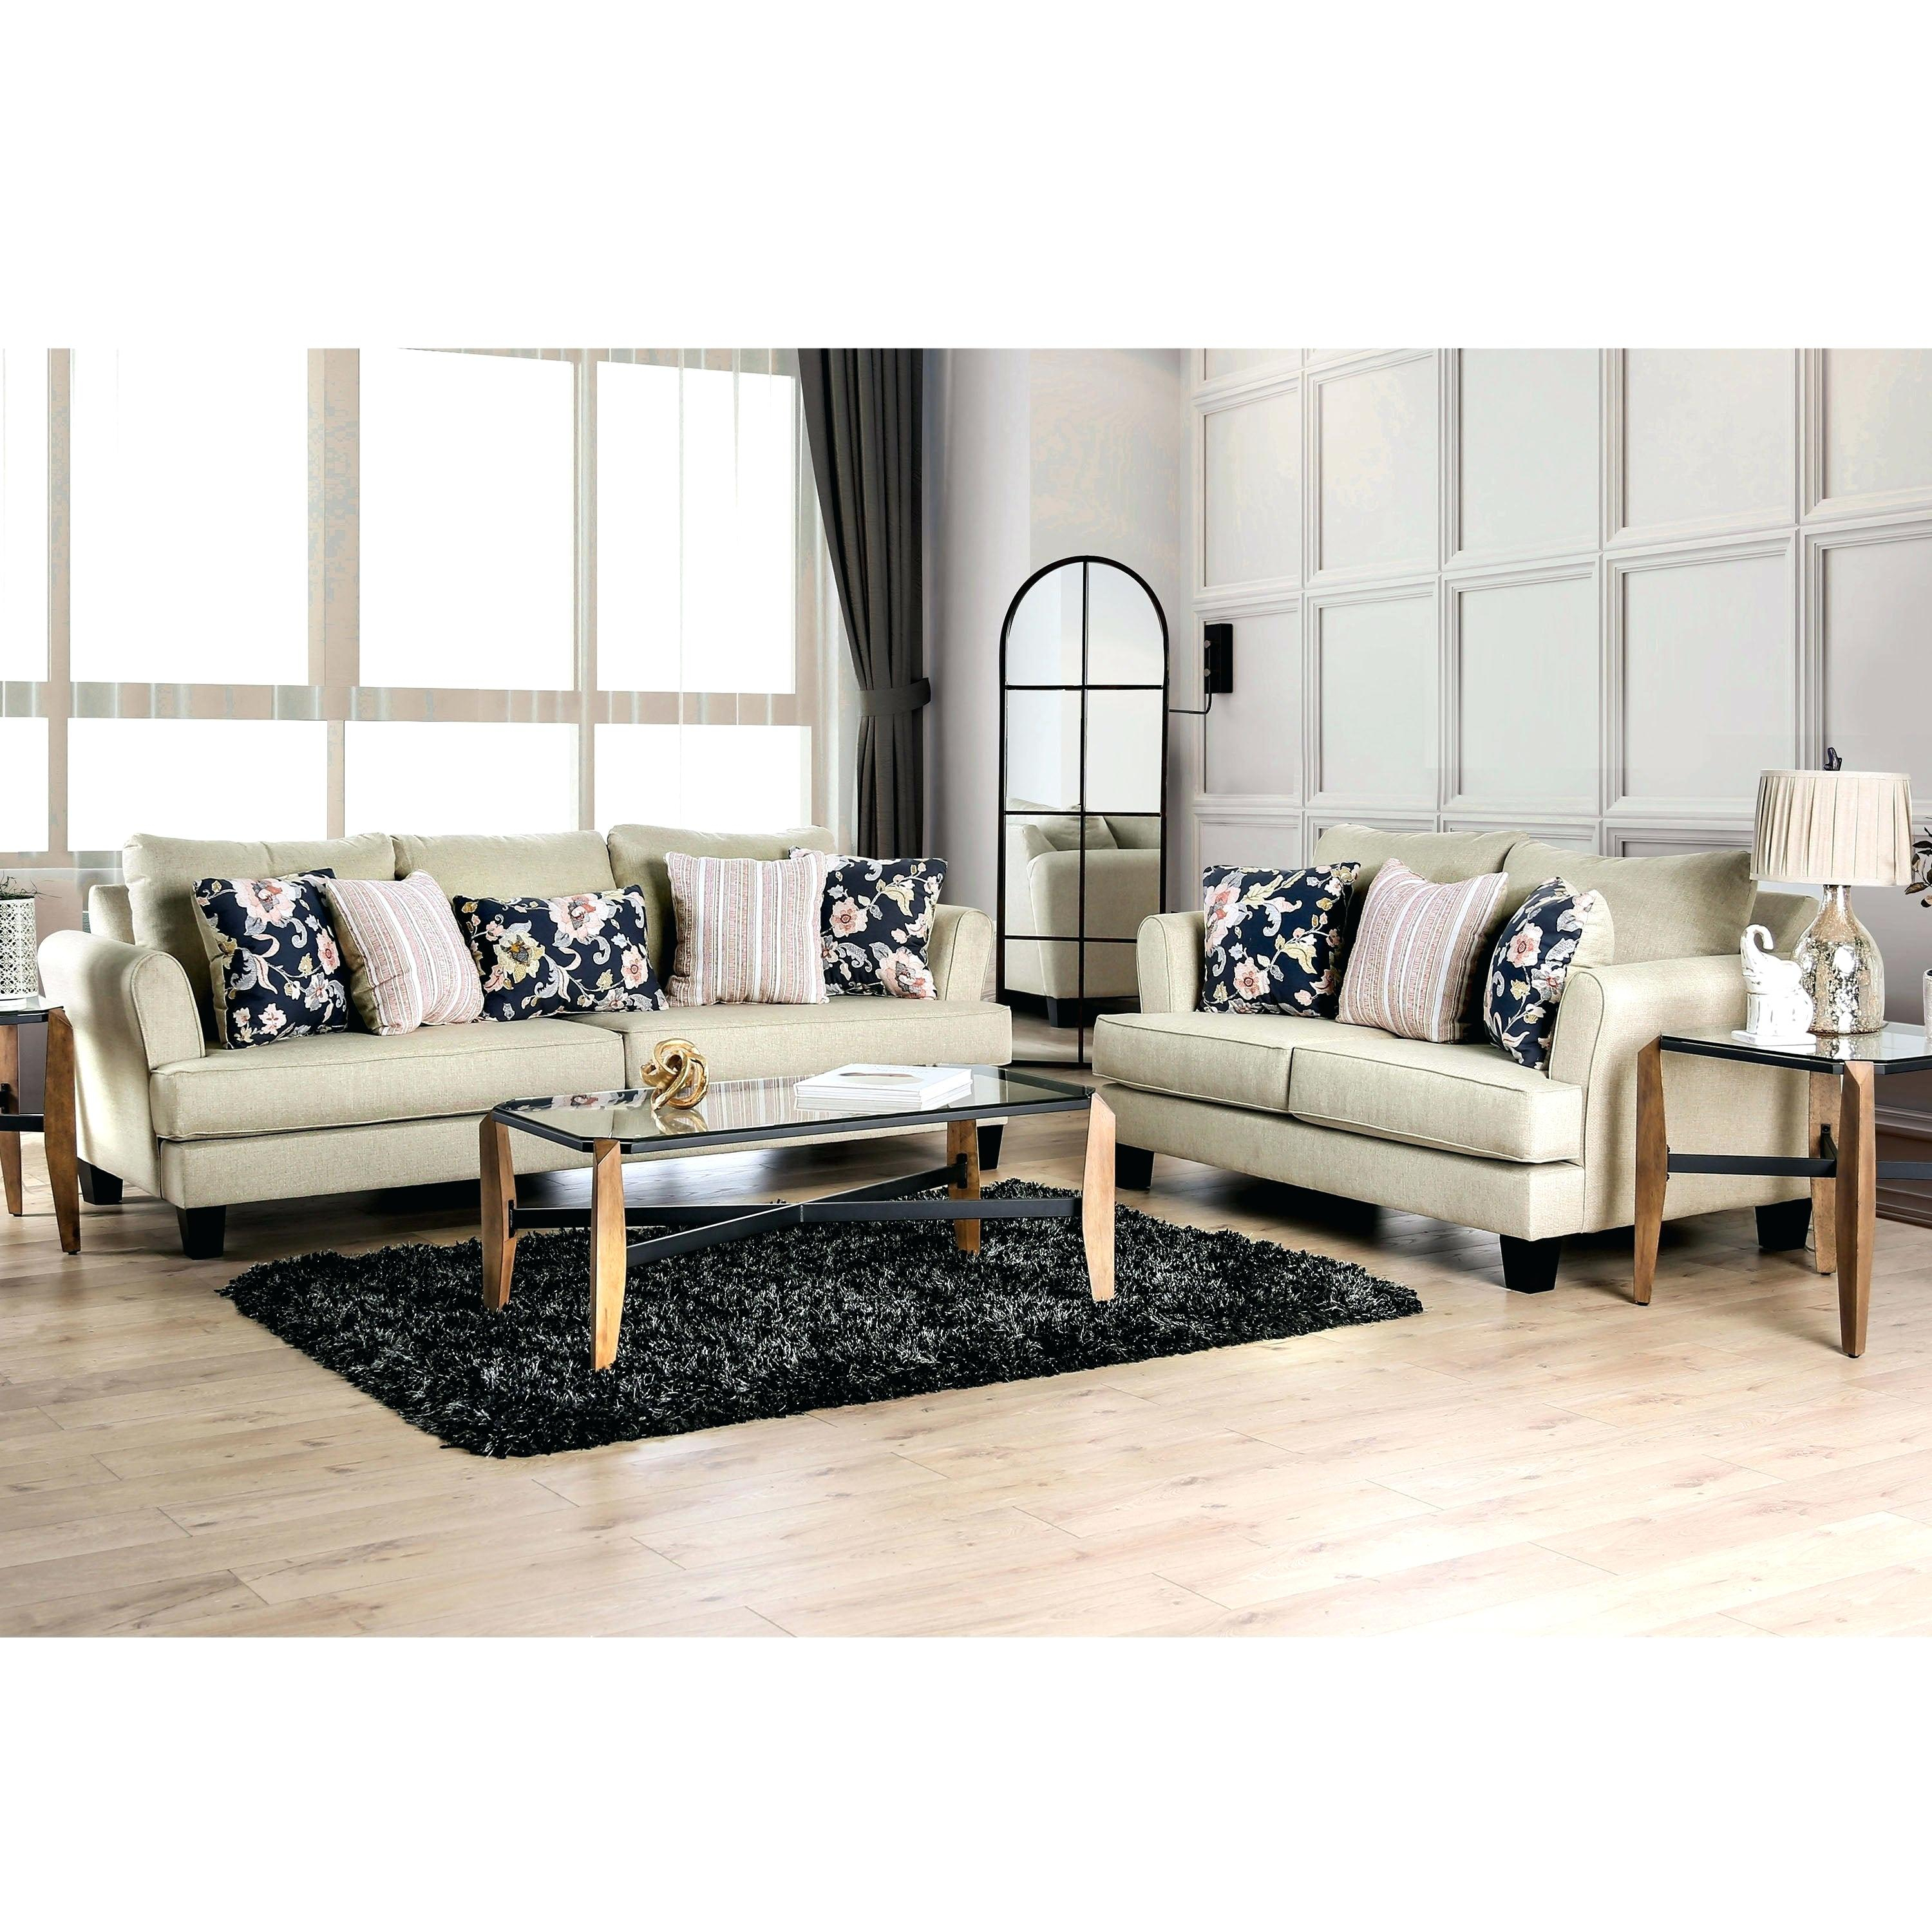 White Living Room Set regarding 12 Clever Ways How to Build All White Living Room Set